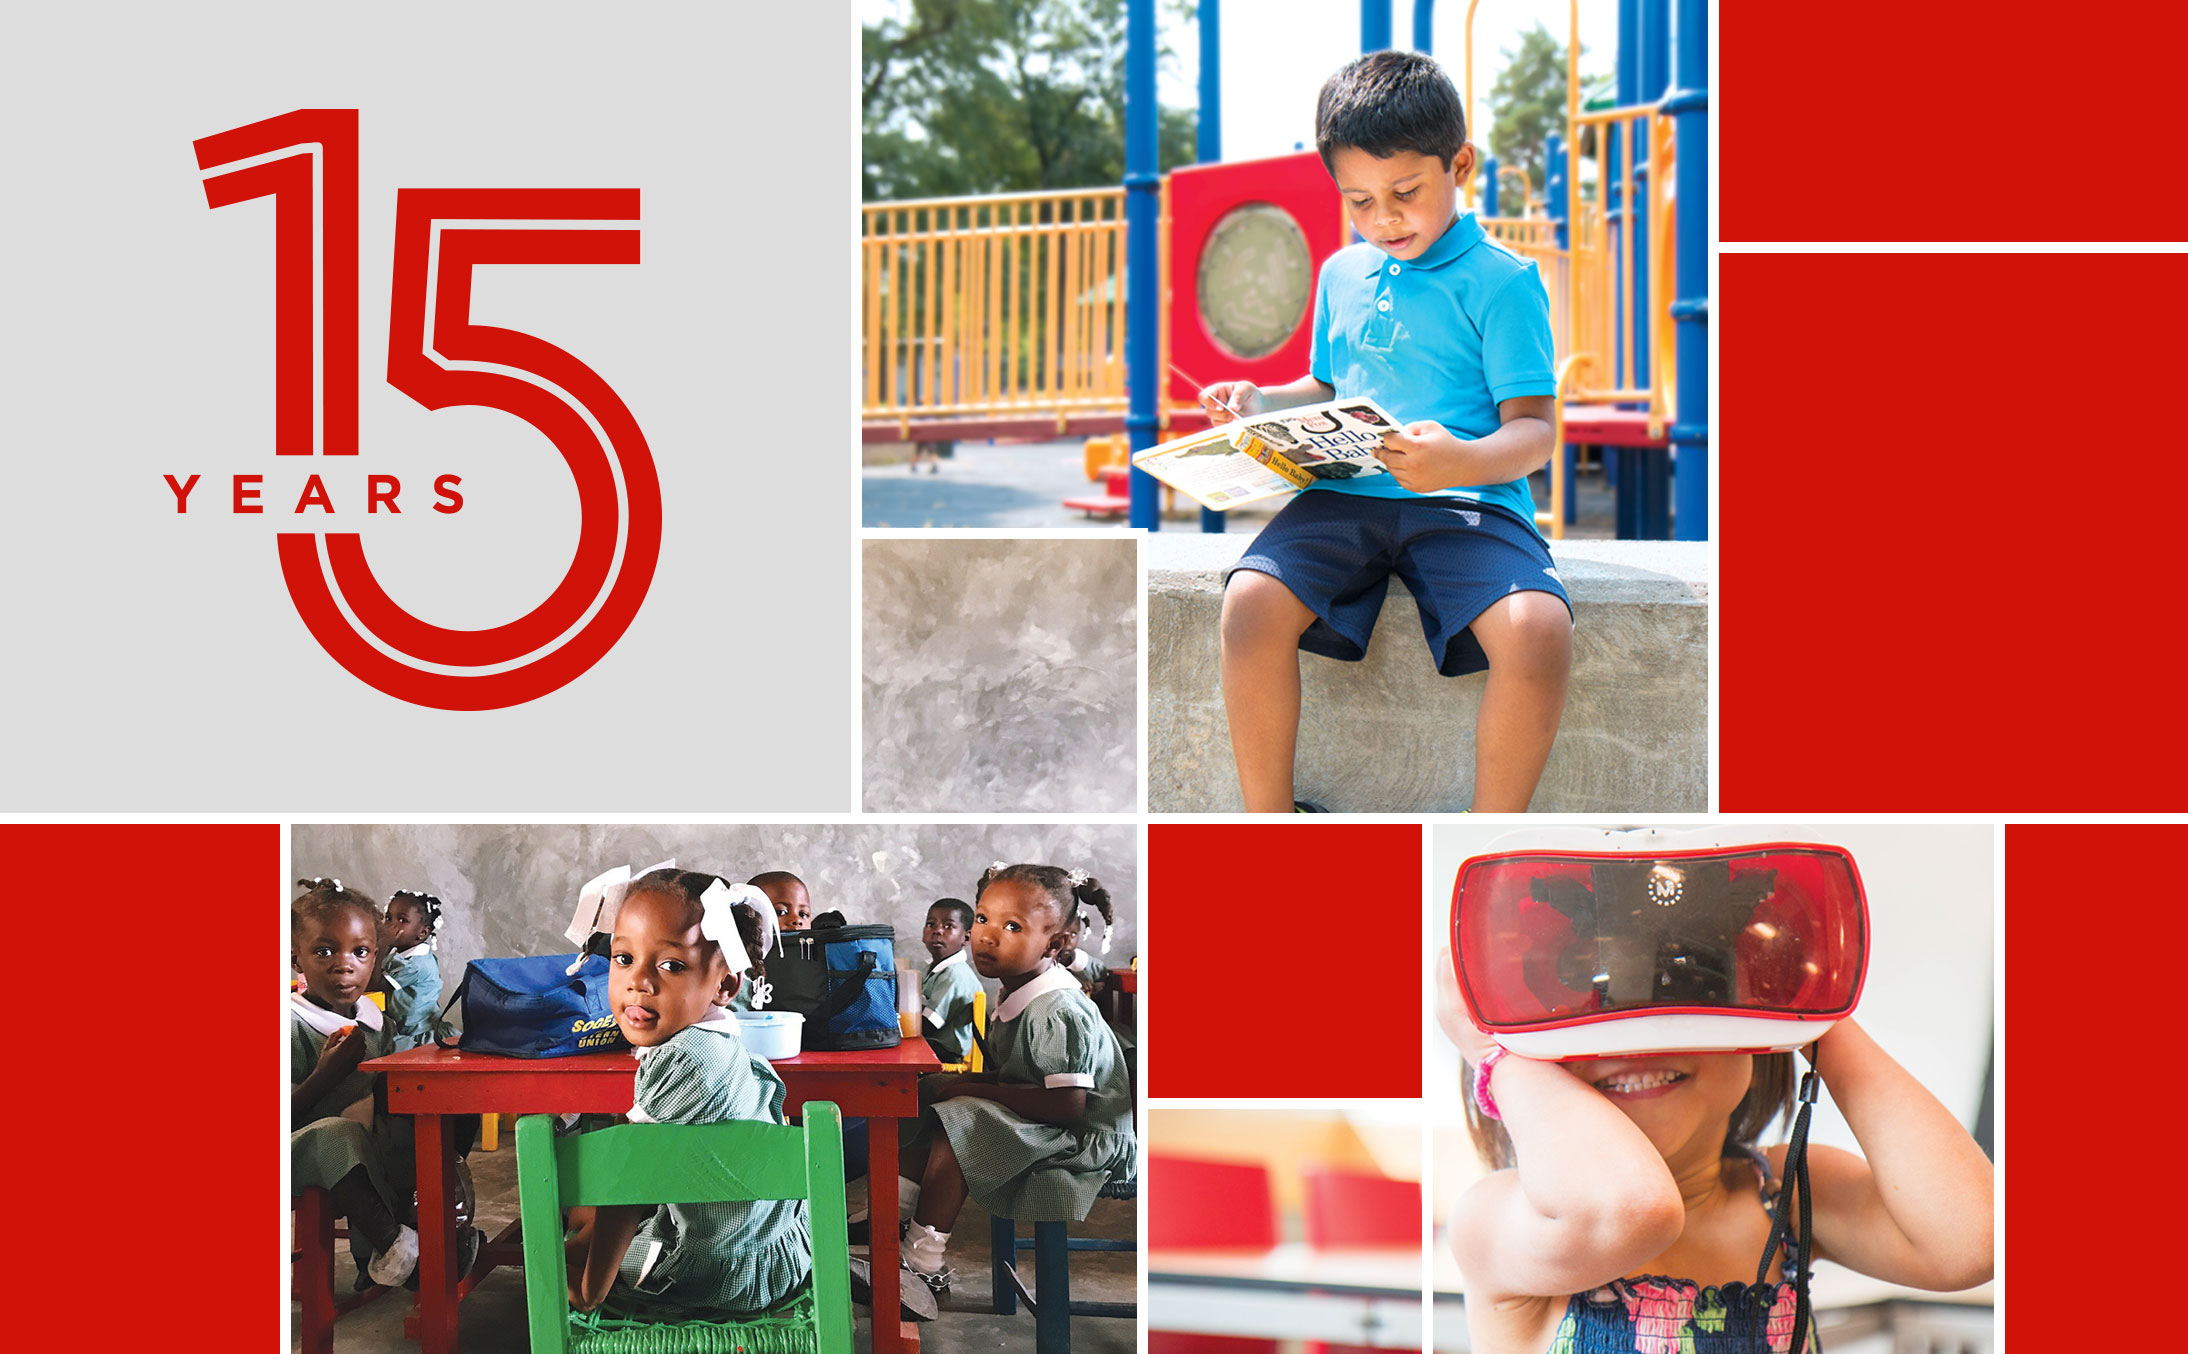 For 15 years, CYFS has impacted lives through research that advances learning and development.